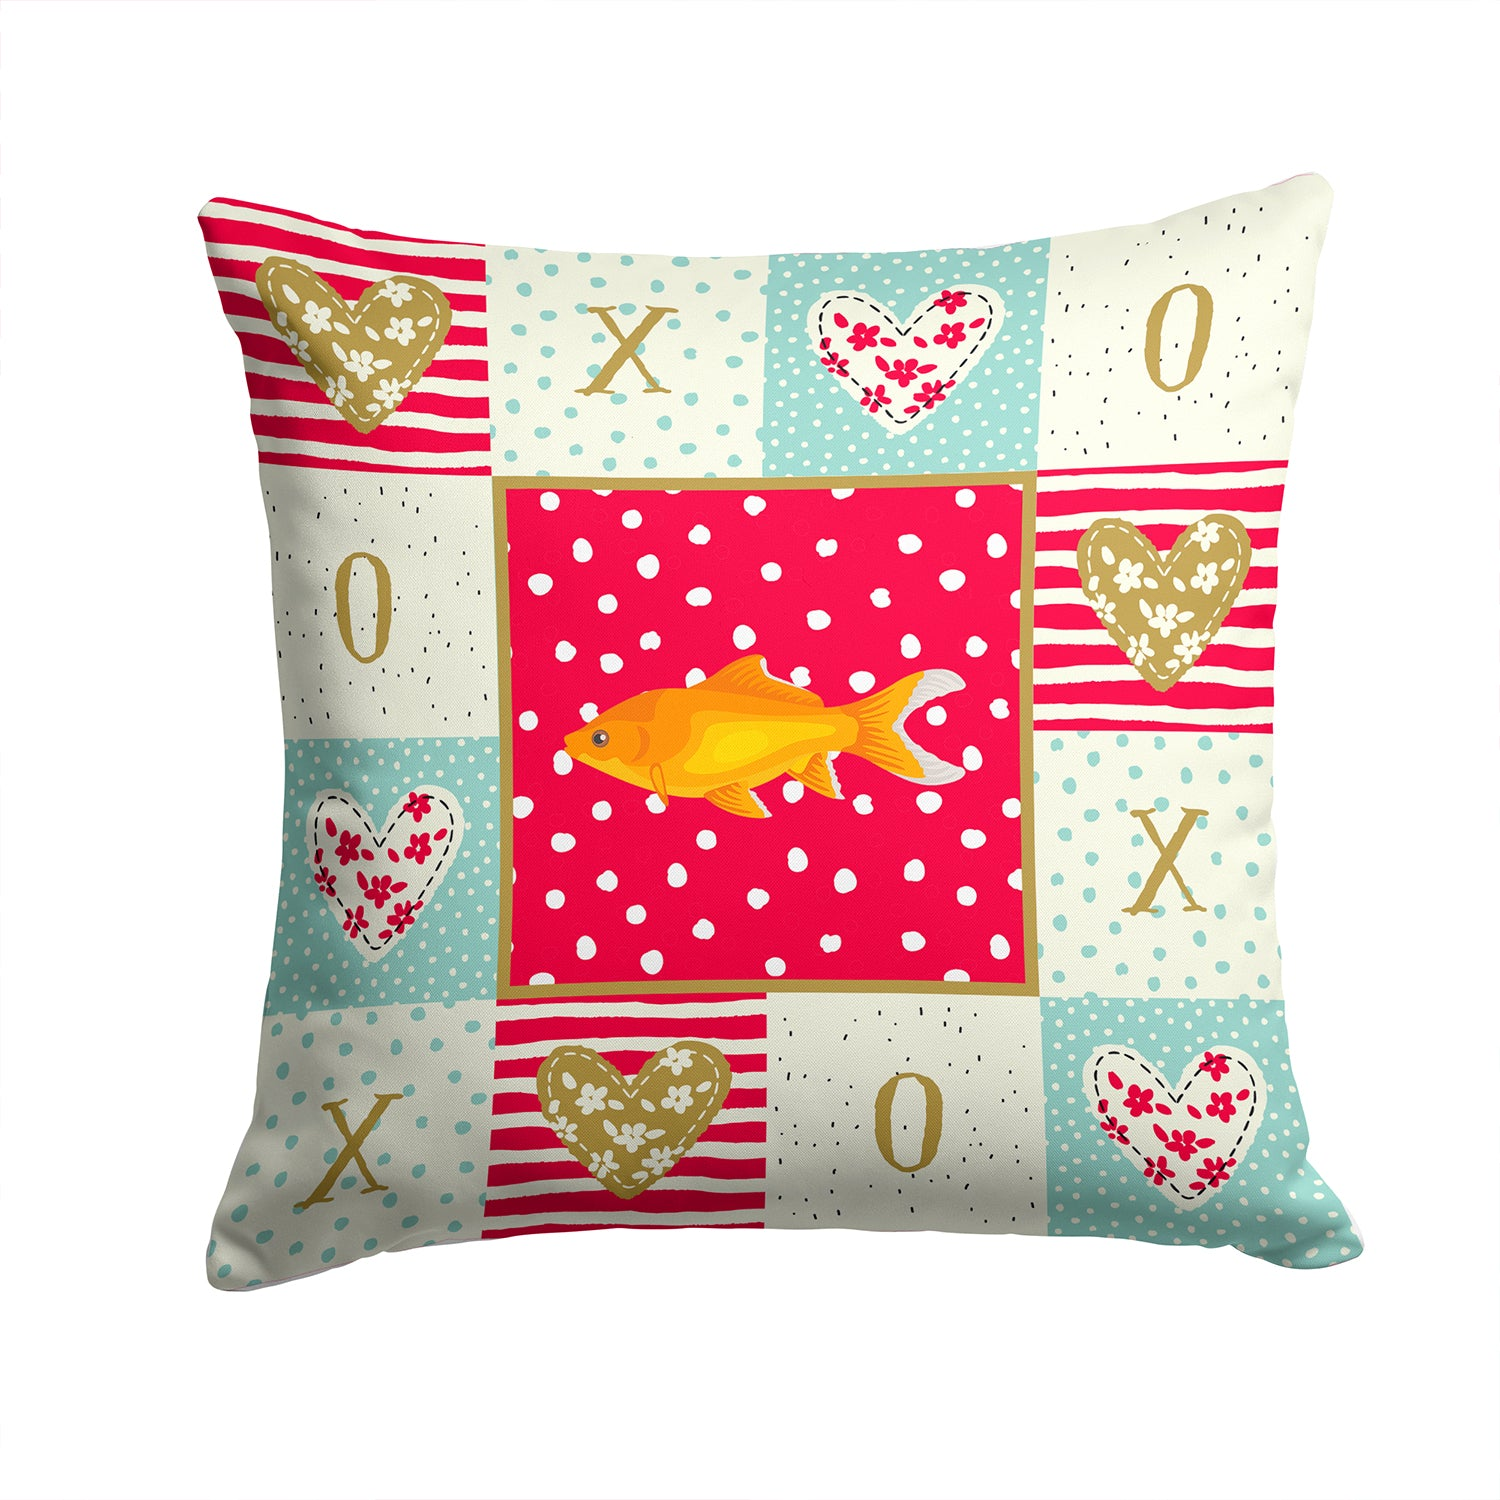 Goldfish Common Love Fabric Decorative Pillow CK5473PW1414 by Caroline's Treasures